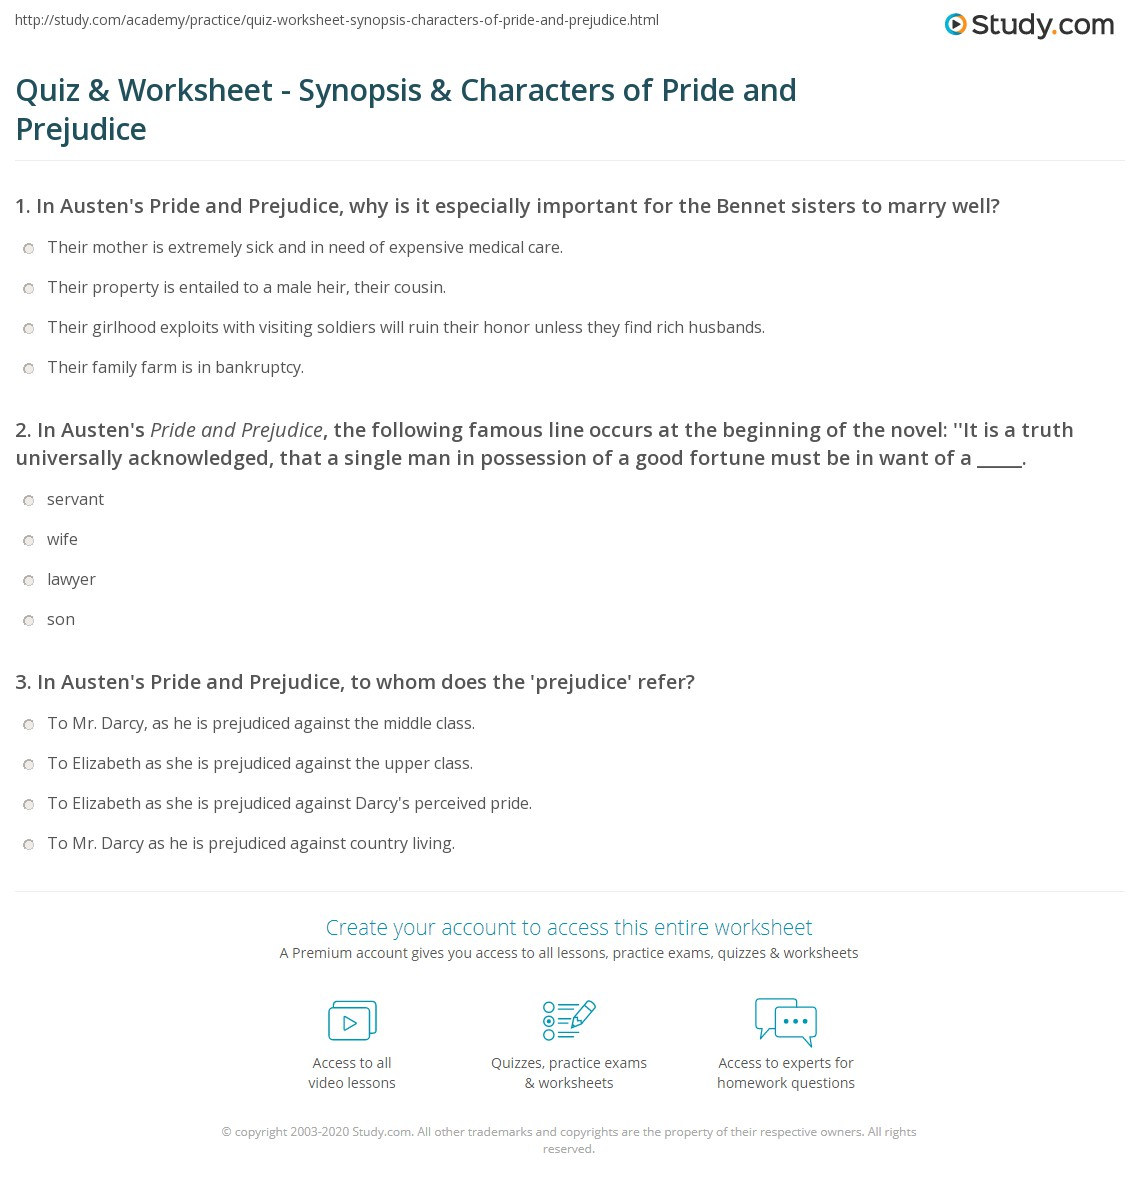 Quiz Worksheet Synopsis Characters of Pride and Prejudice – Character Analysis Worksheets